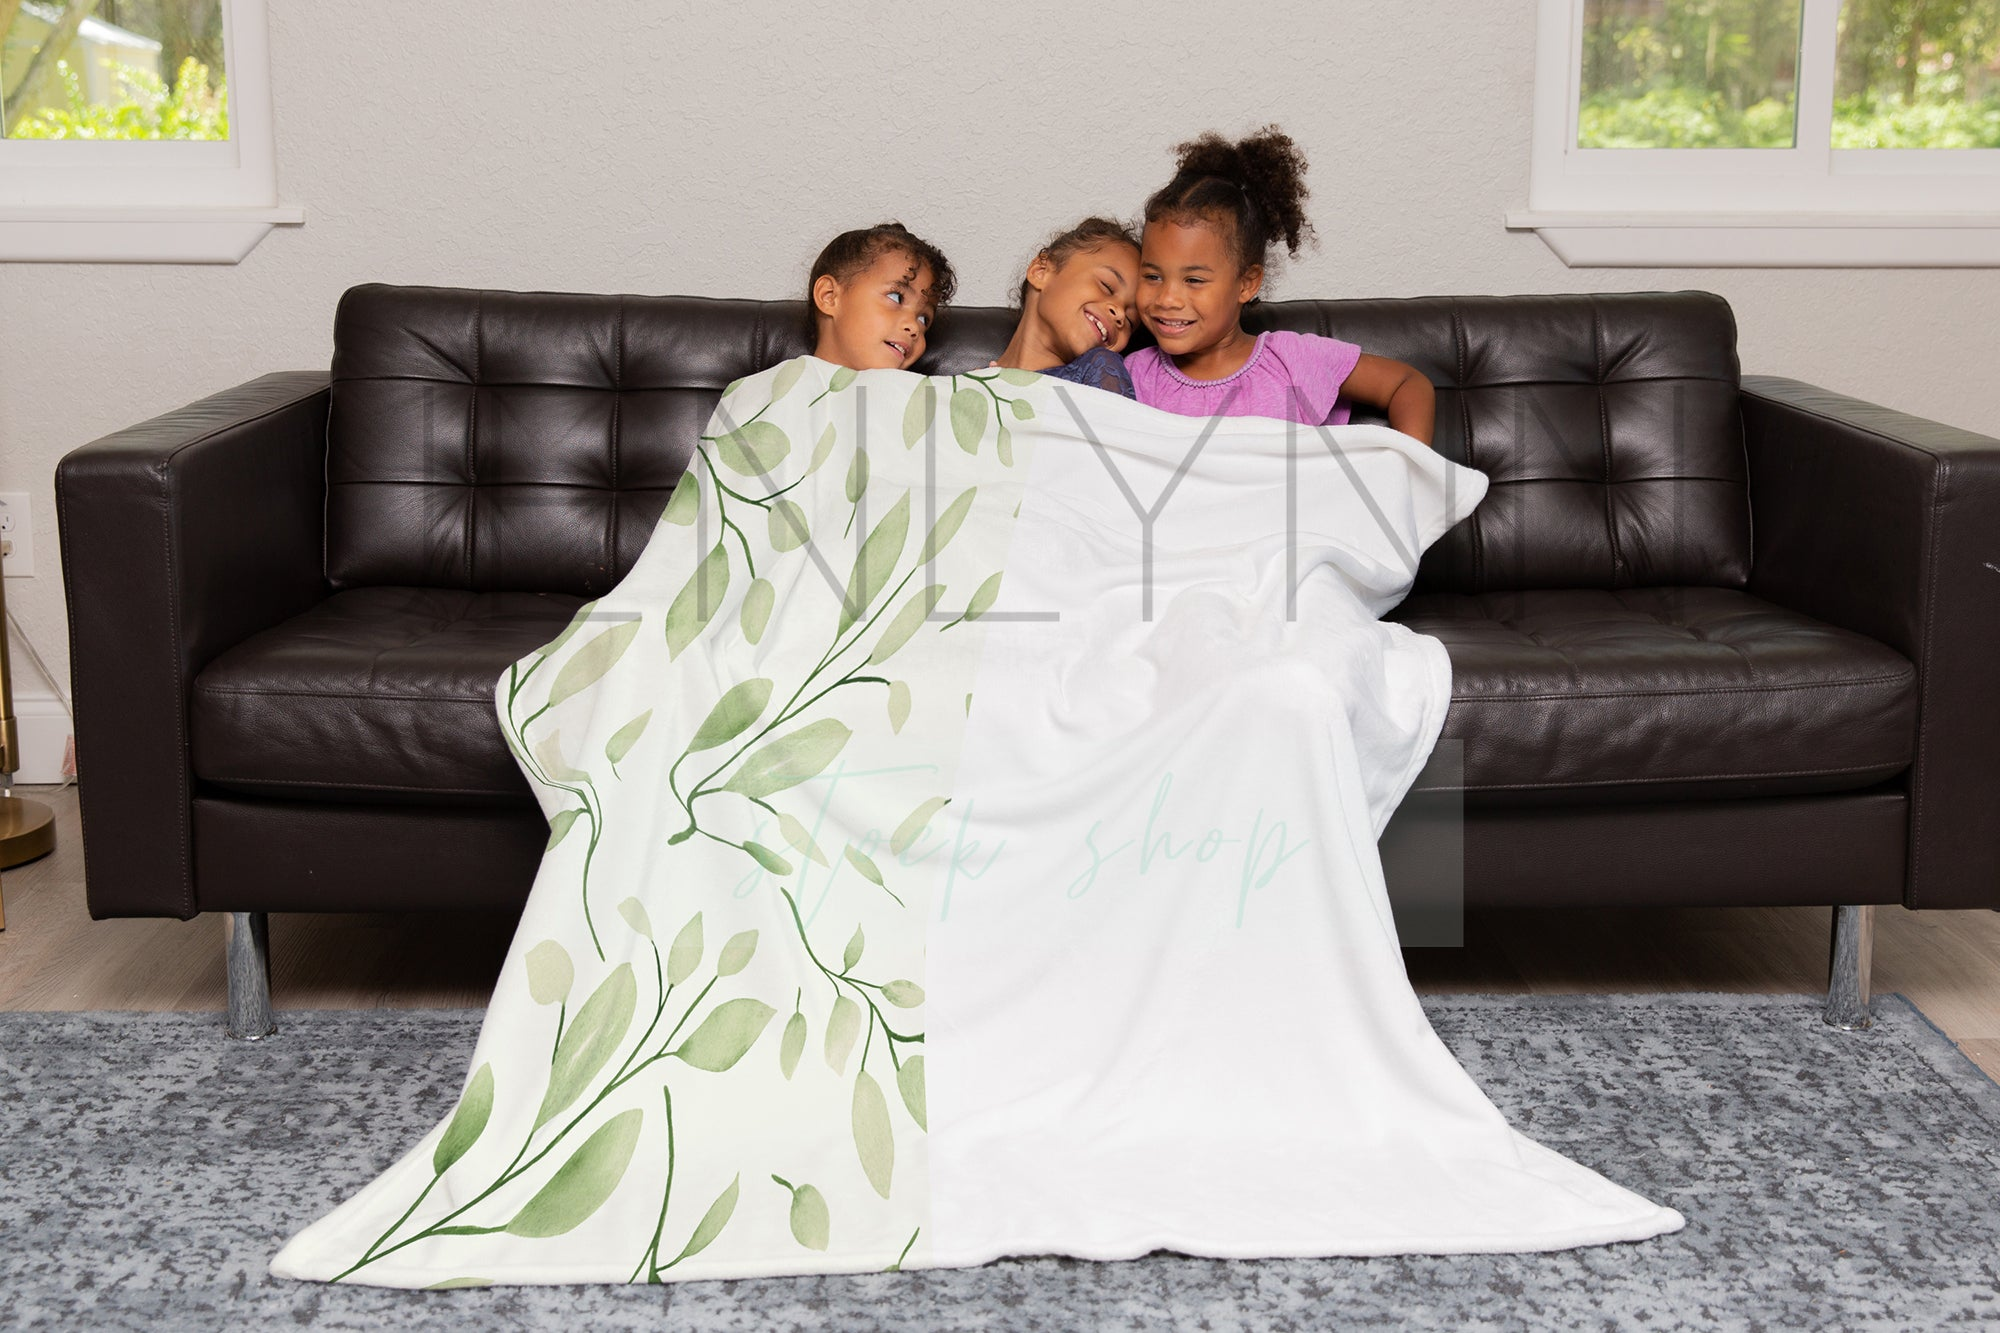 50x60 Minky Blanket + Black Models on Couch Mockup #TH05